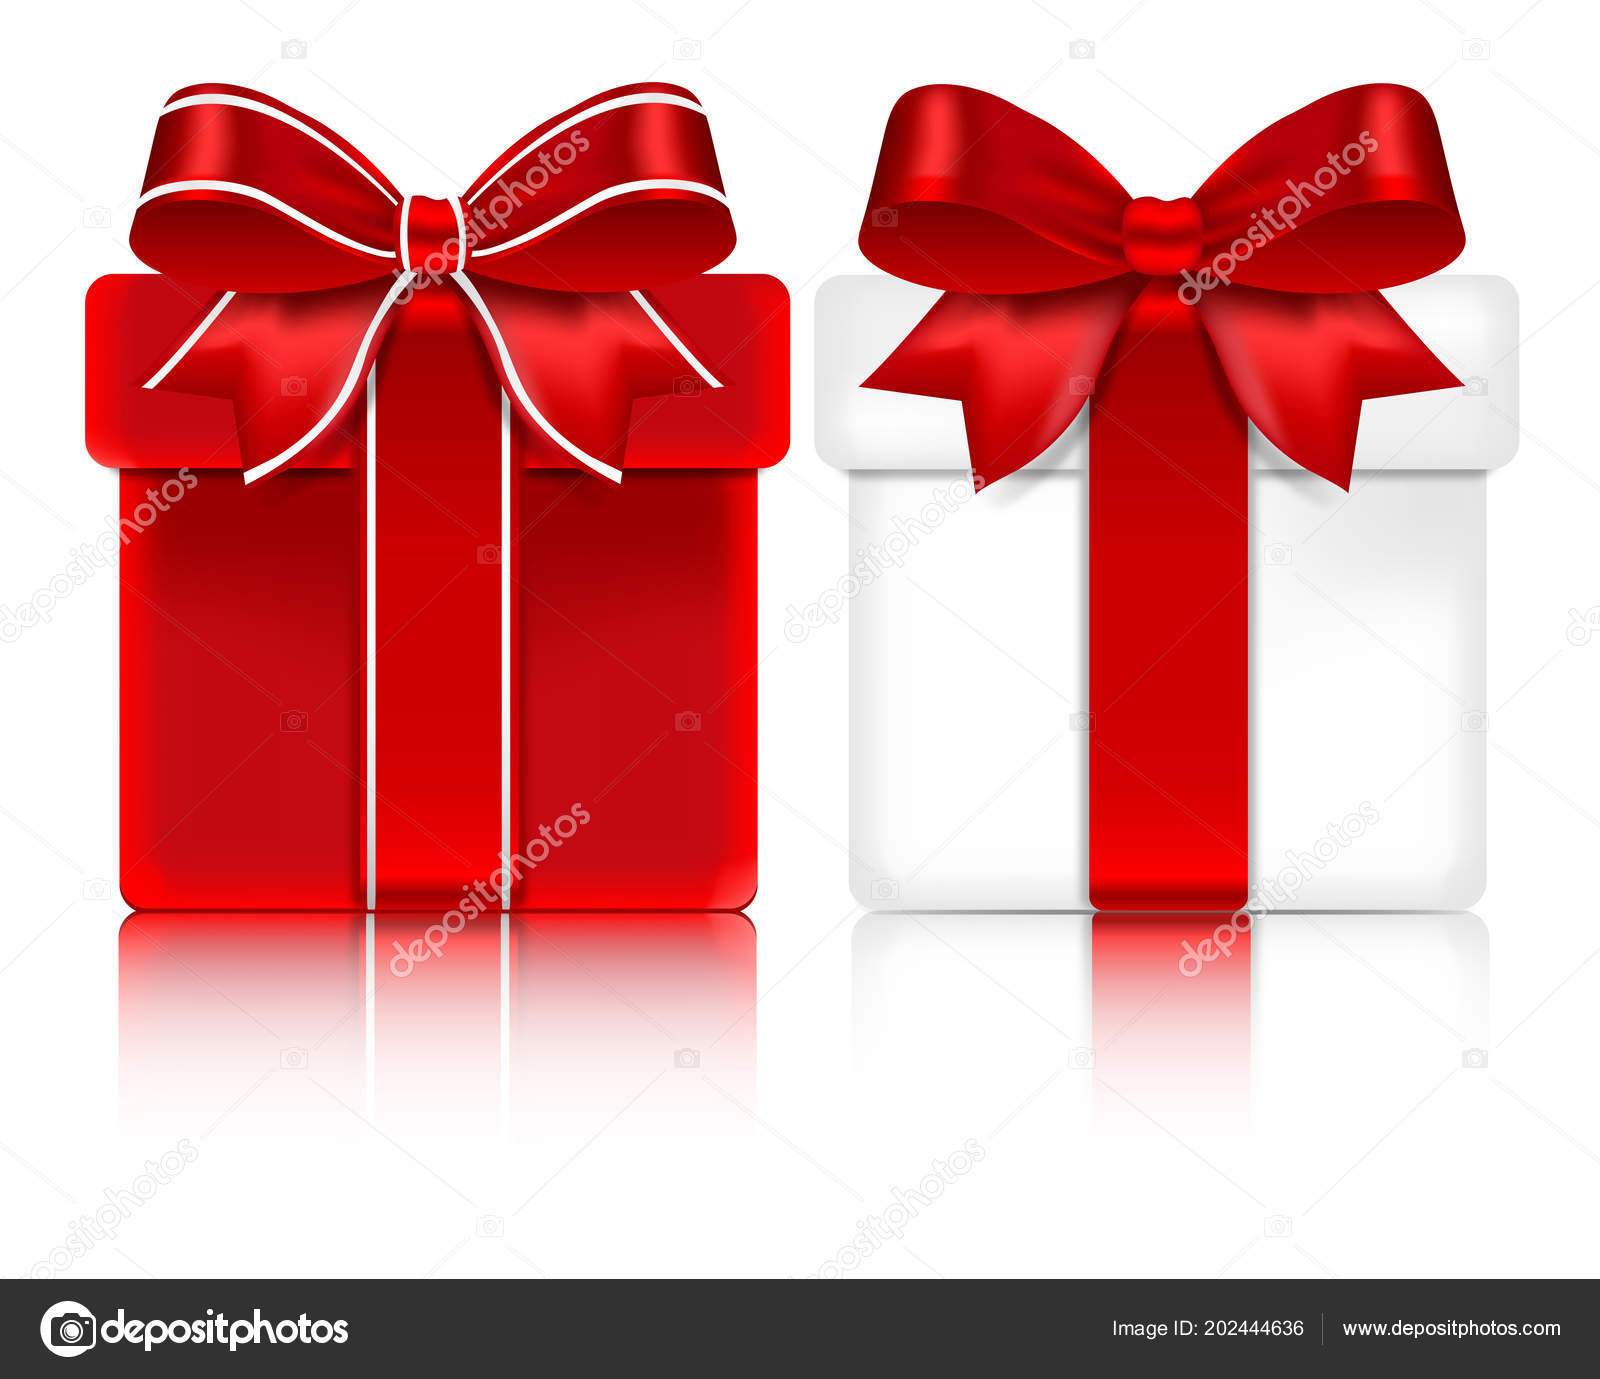 giant gift boxes red ribbons bows isolated white background stock